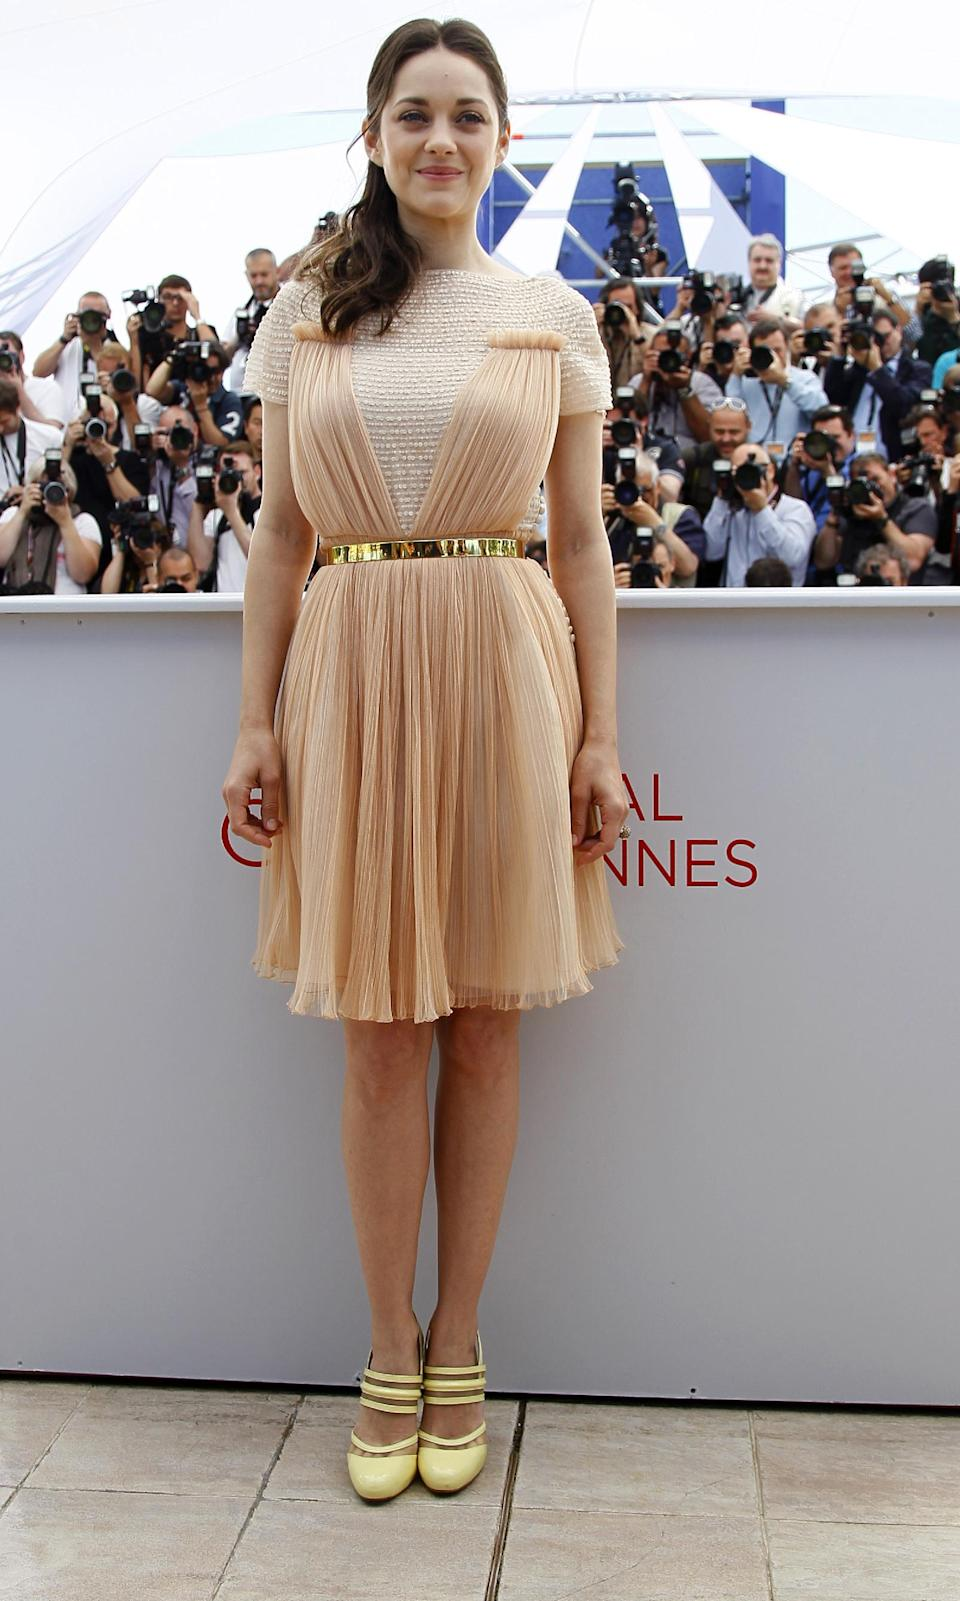 Actress Marion Cotillard poses during a photo call for Rust and Bone at the 65th international film festival, in Cannes, southern France, Thursday, May 17, 2012. Cotillard is wearing Dior. (AP Photo/Francois Mori)